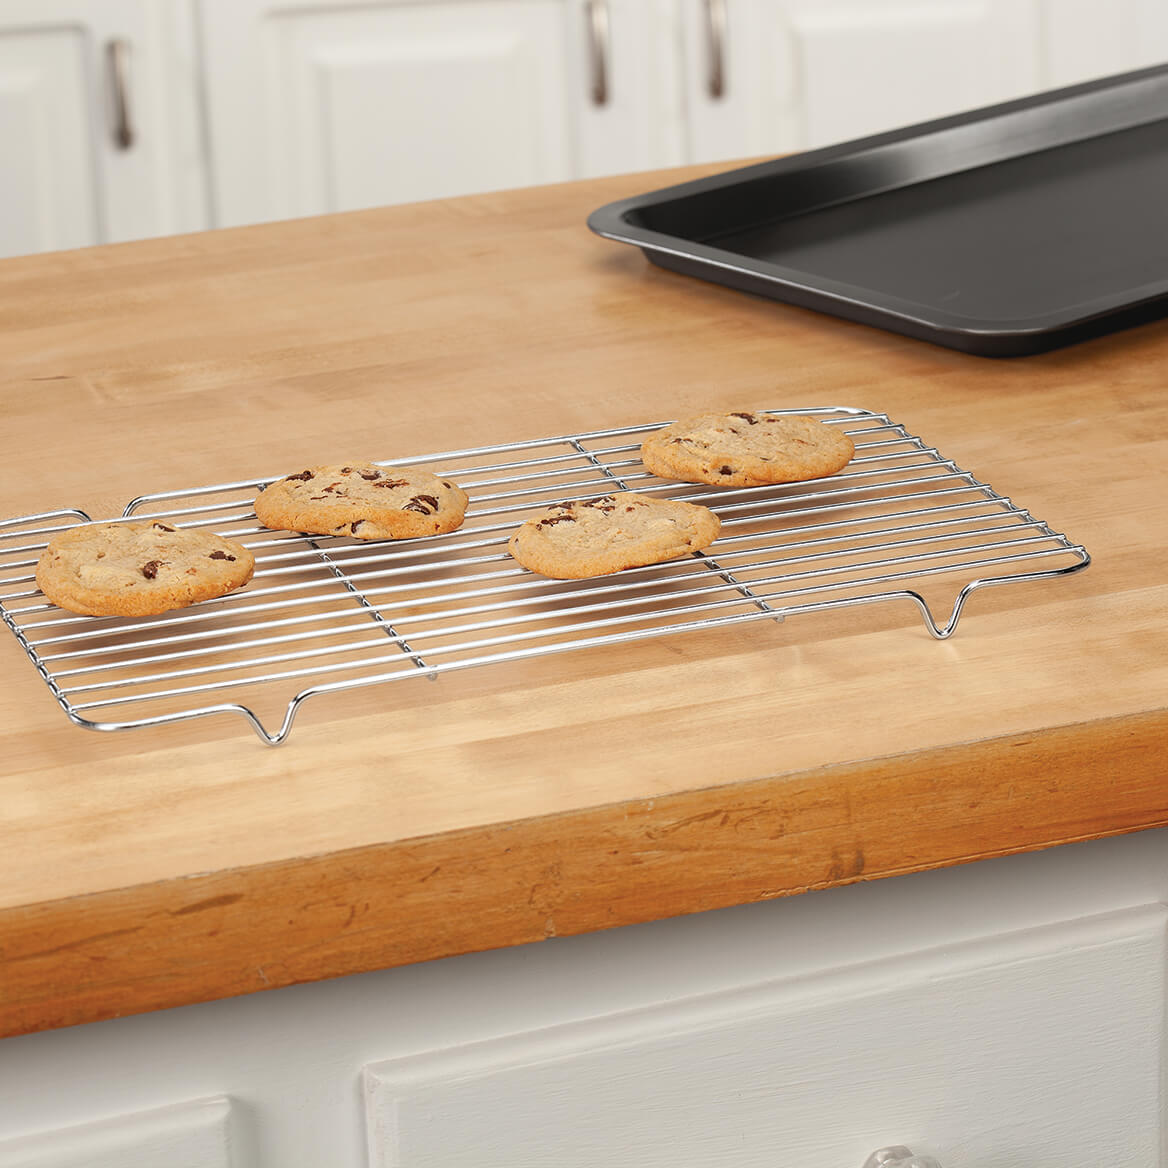 Smallspace Living: All In One Non-Stick Baking Sheet And Stainless Steel Rack